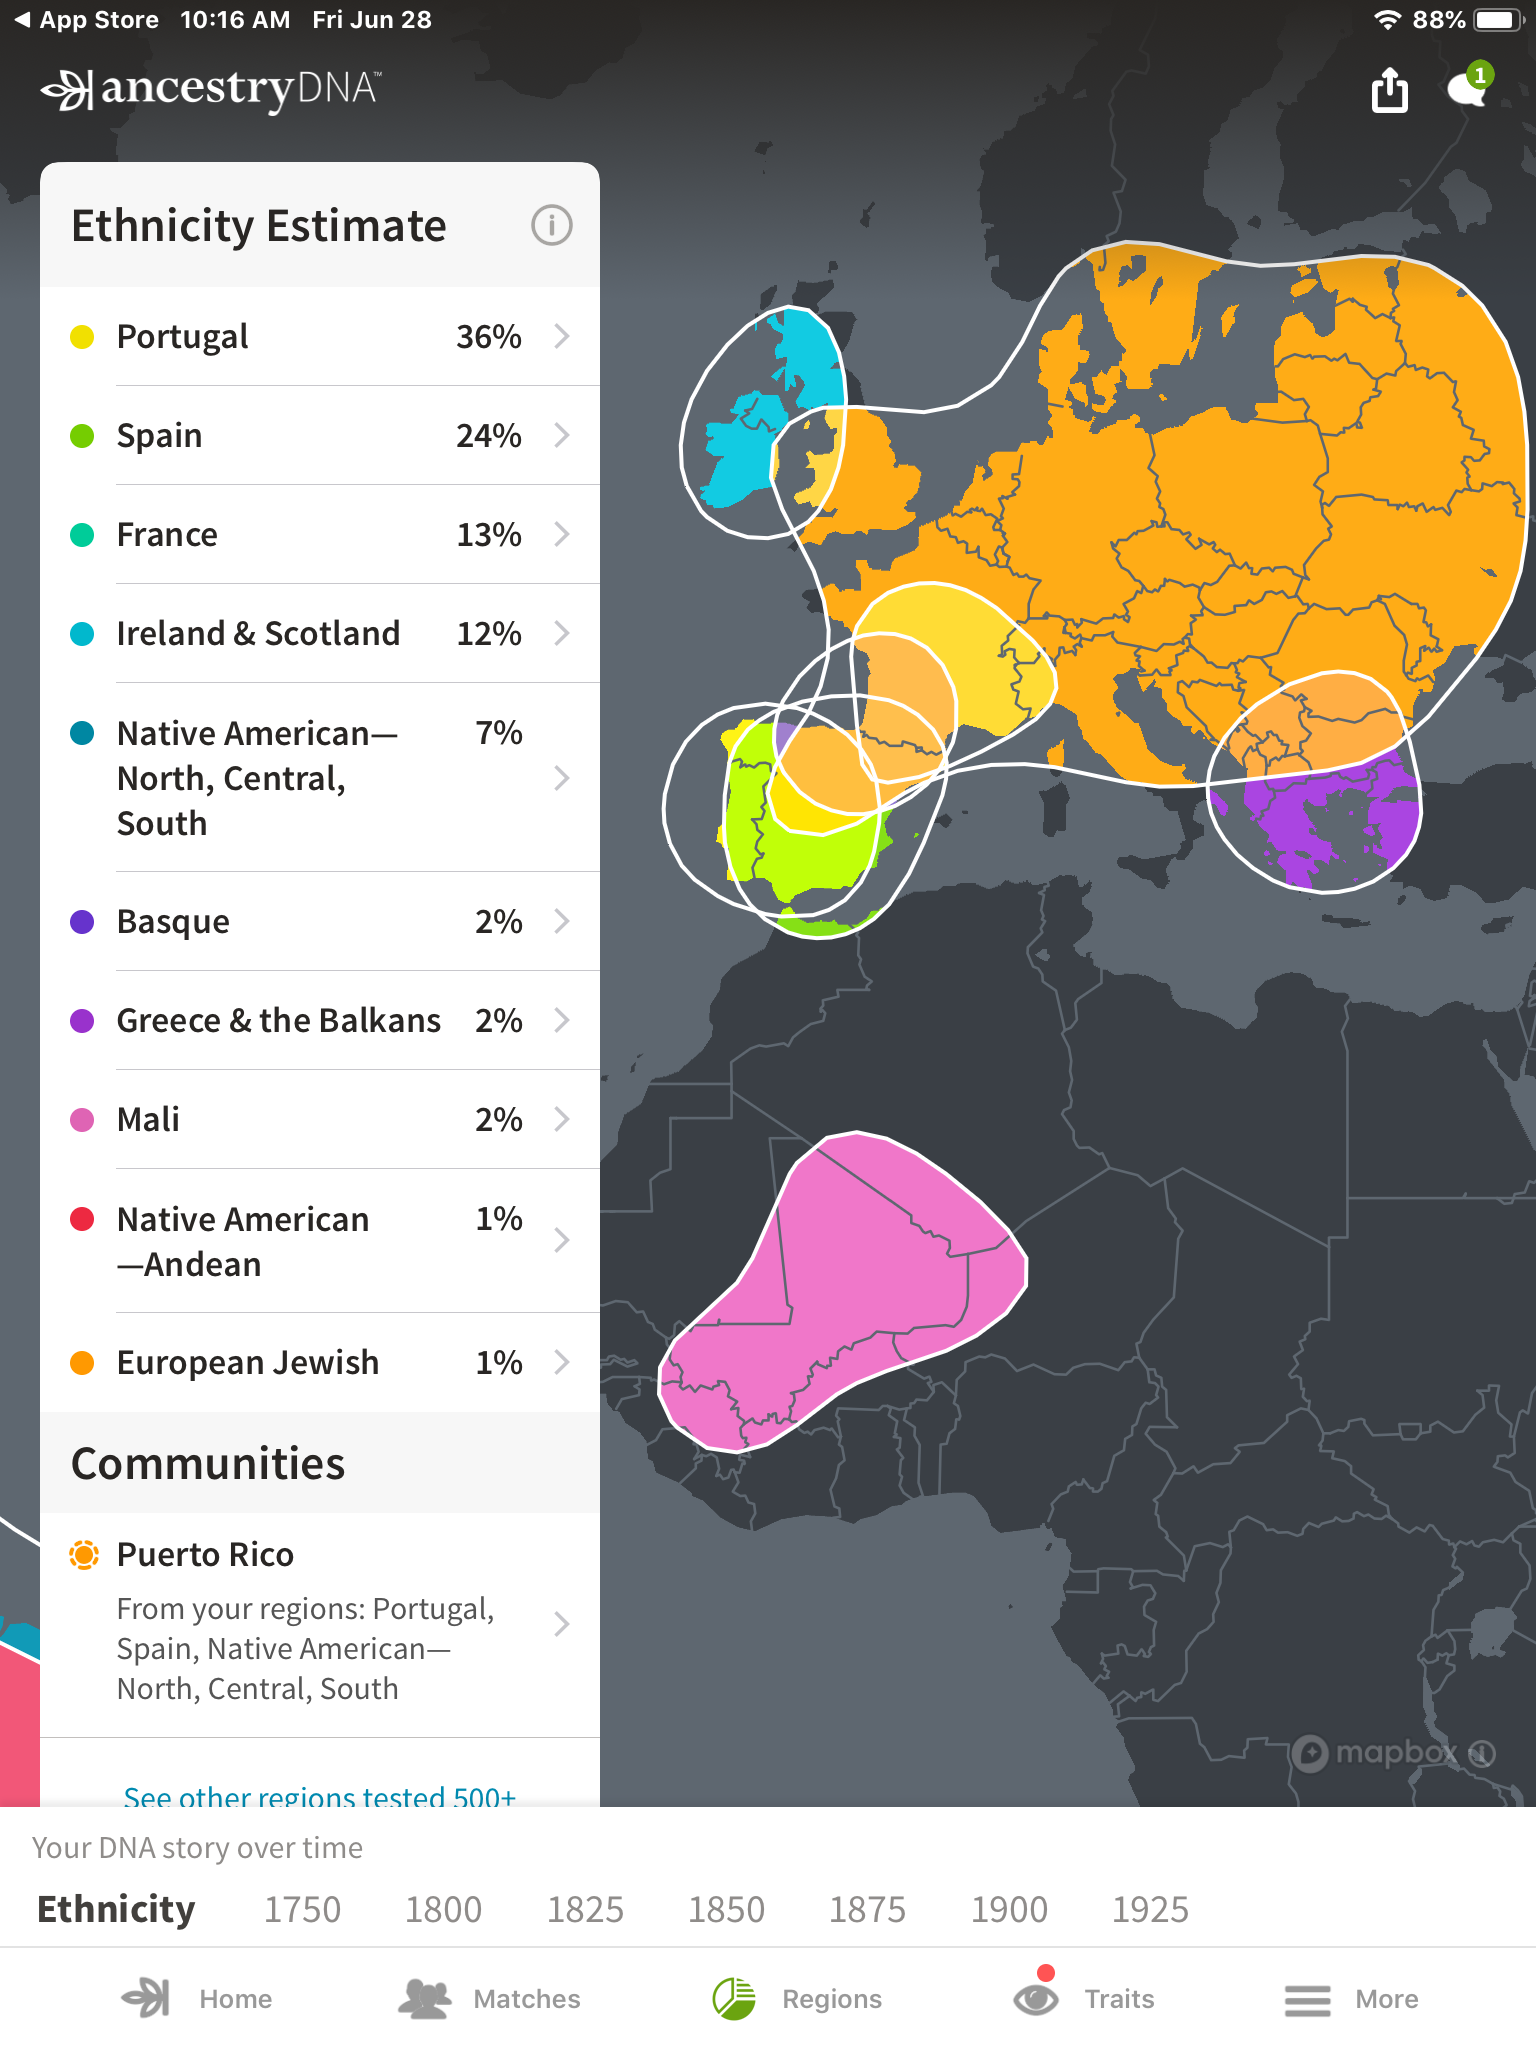 My Ancestry.com DNA results and cultural breakdown